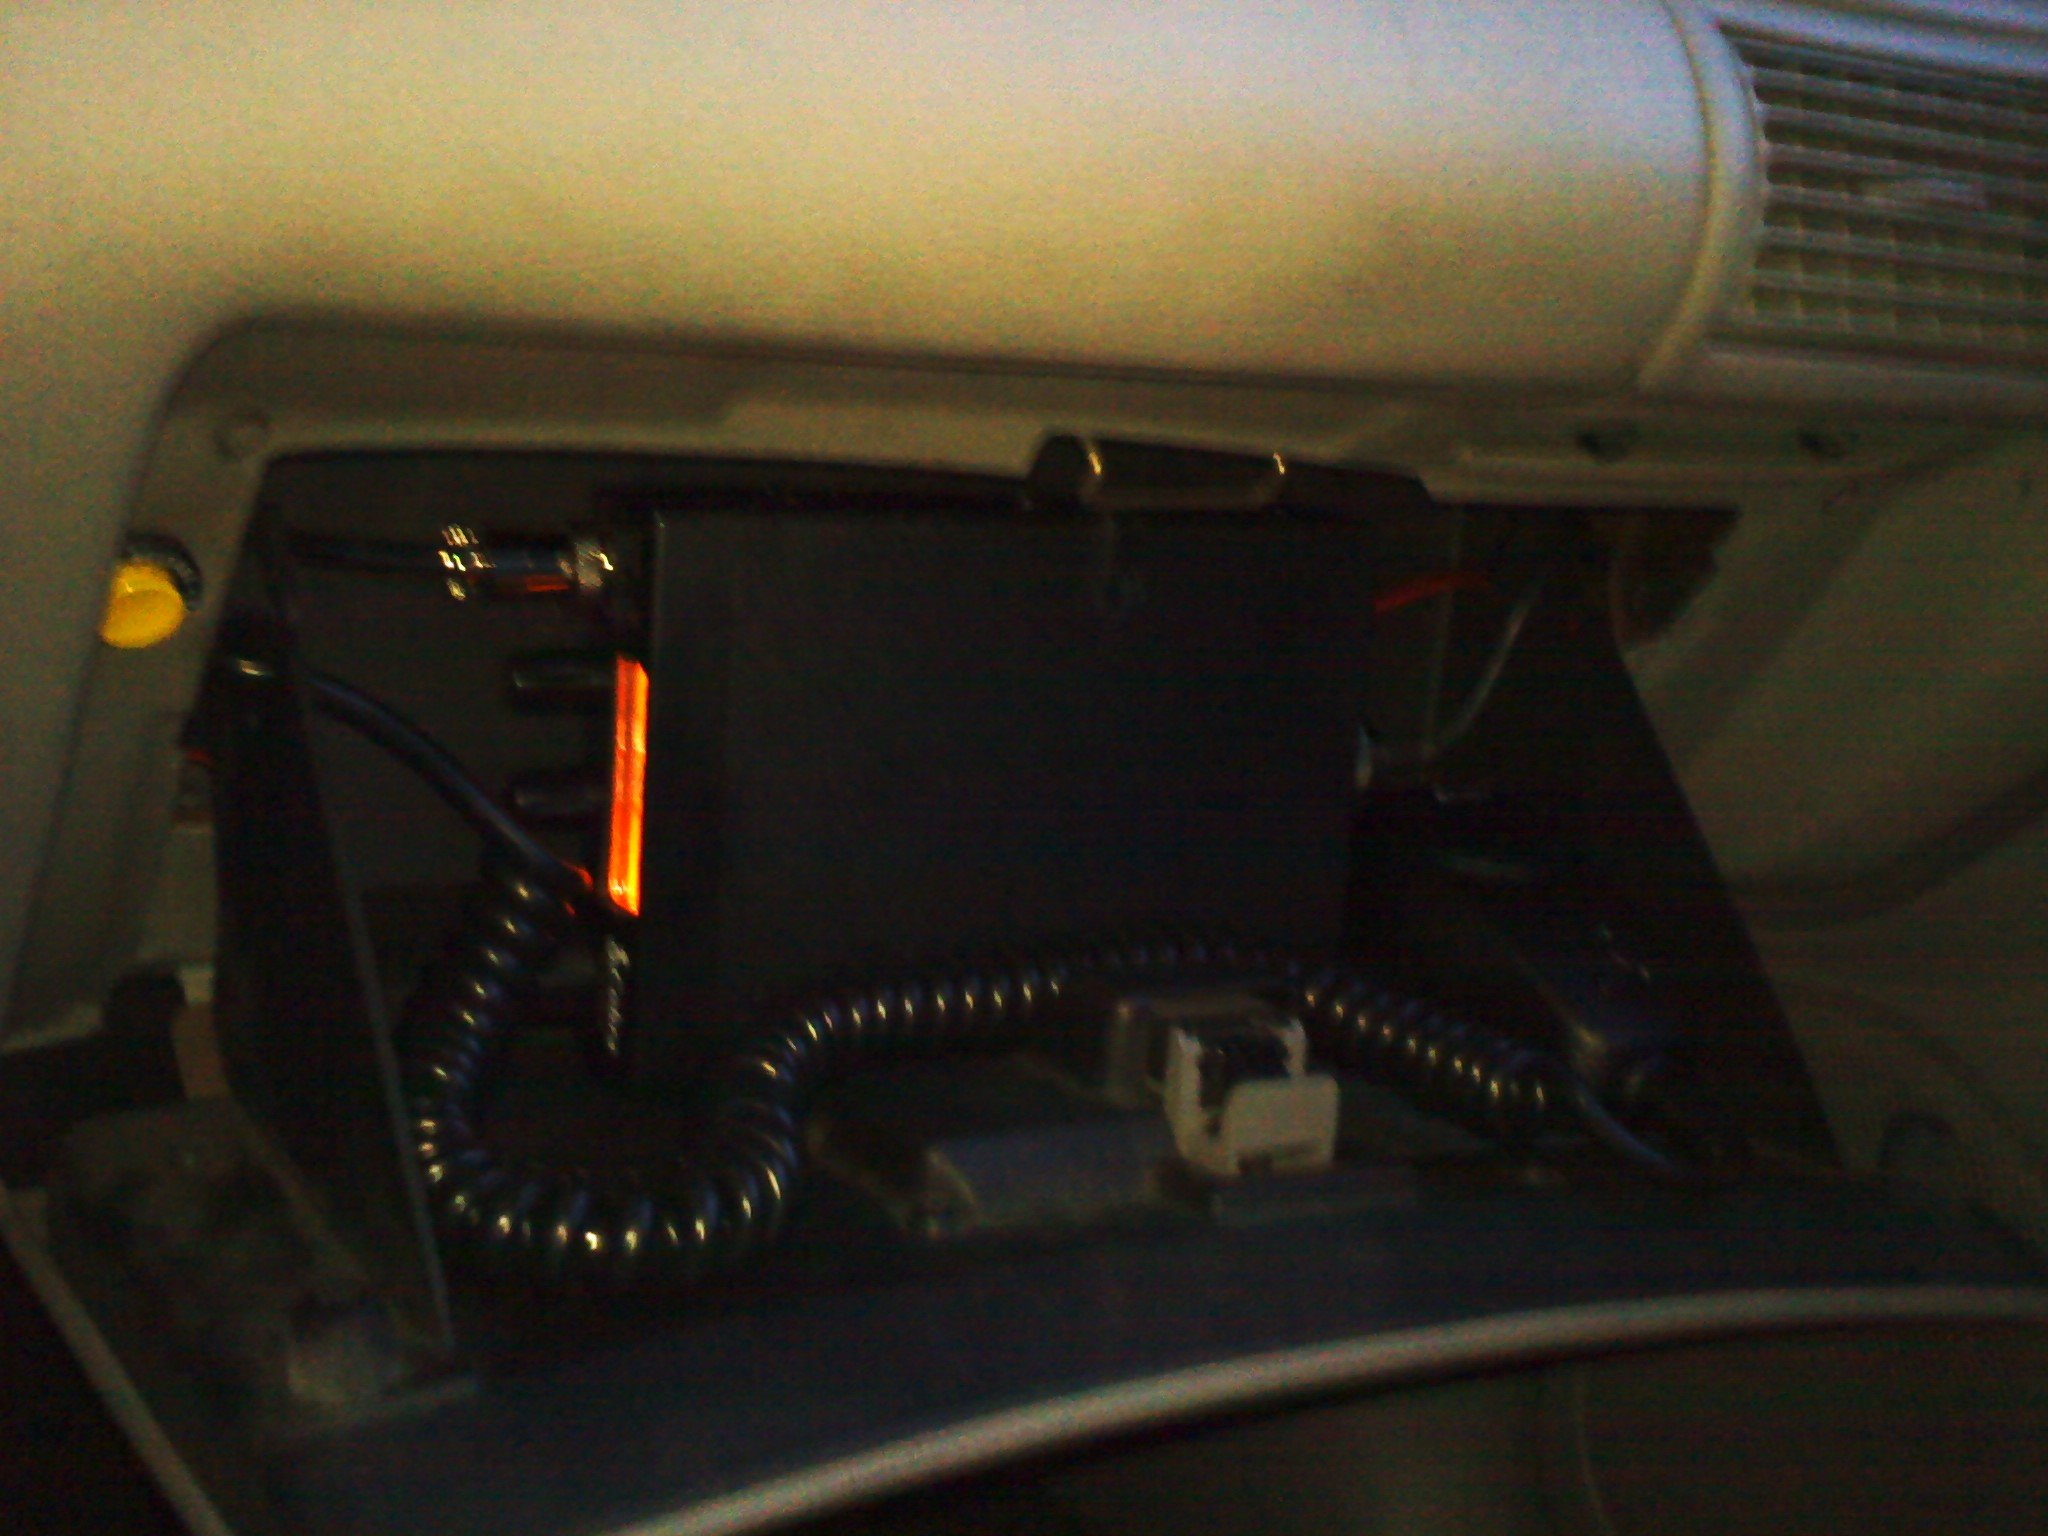 1998 Mustang Gt Fuse Box Wiring Library 2000 Ford Windstar Lx Diagram Cb Radio Touble Forum Rh Allfordmustangs Com